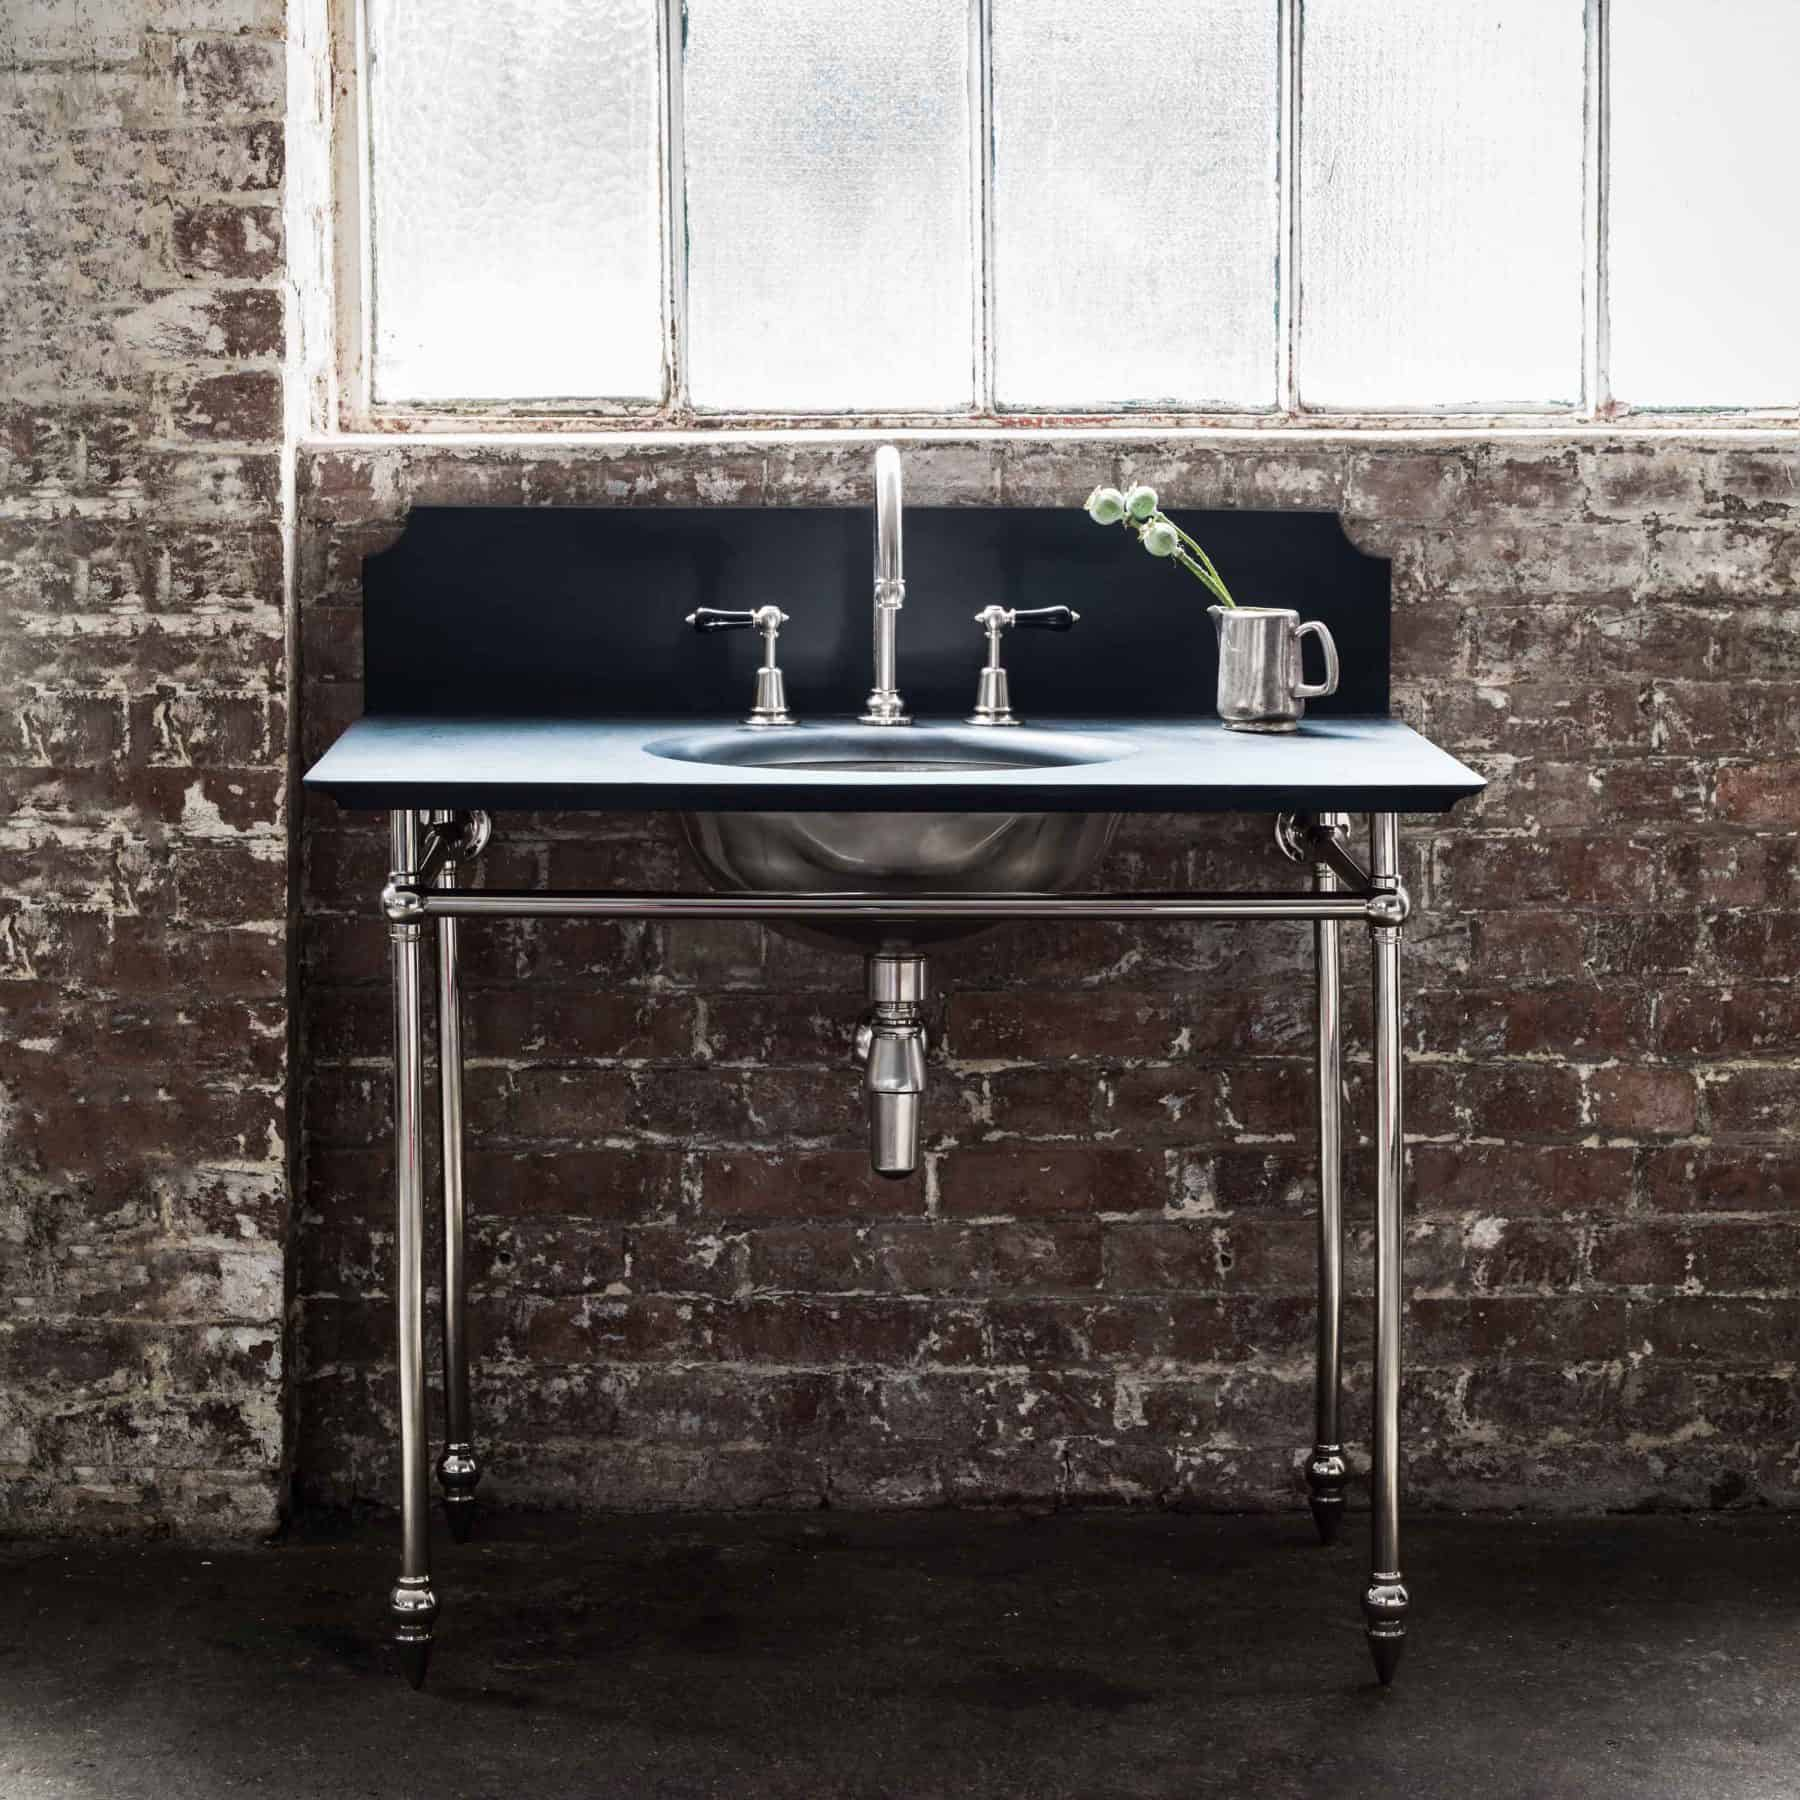 The Catchpole & Rye Pyrford Washstand in Silver Nickel and Natural Slate.